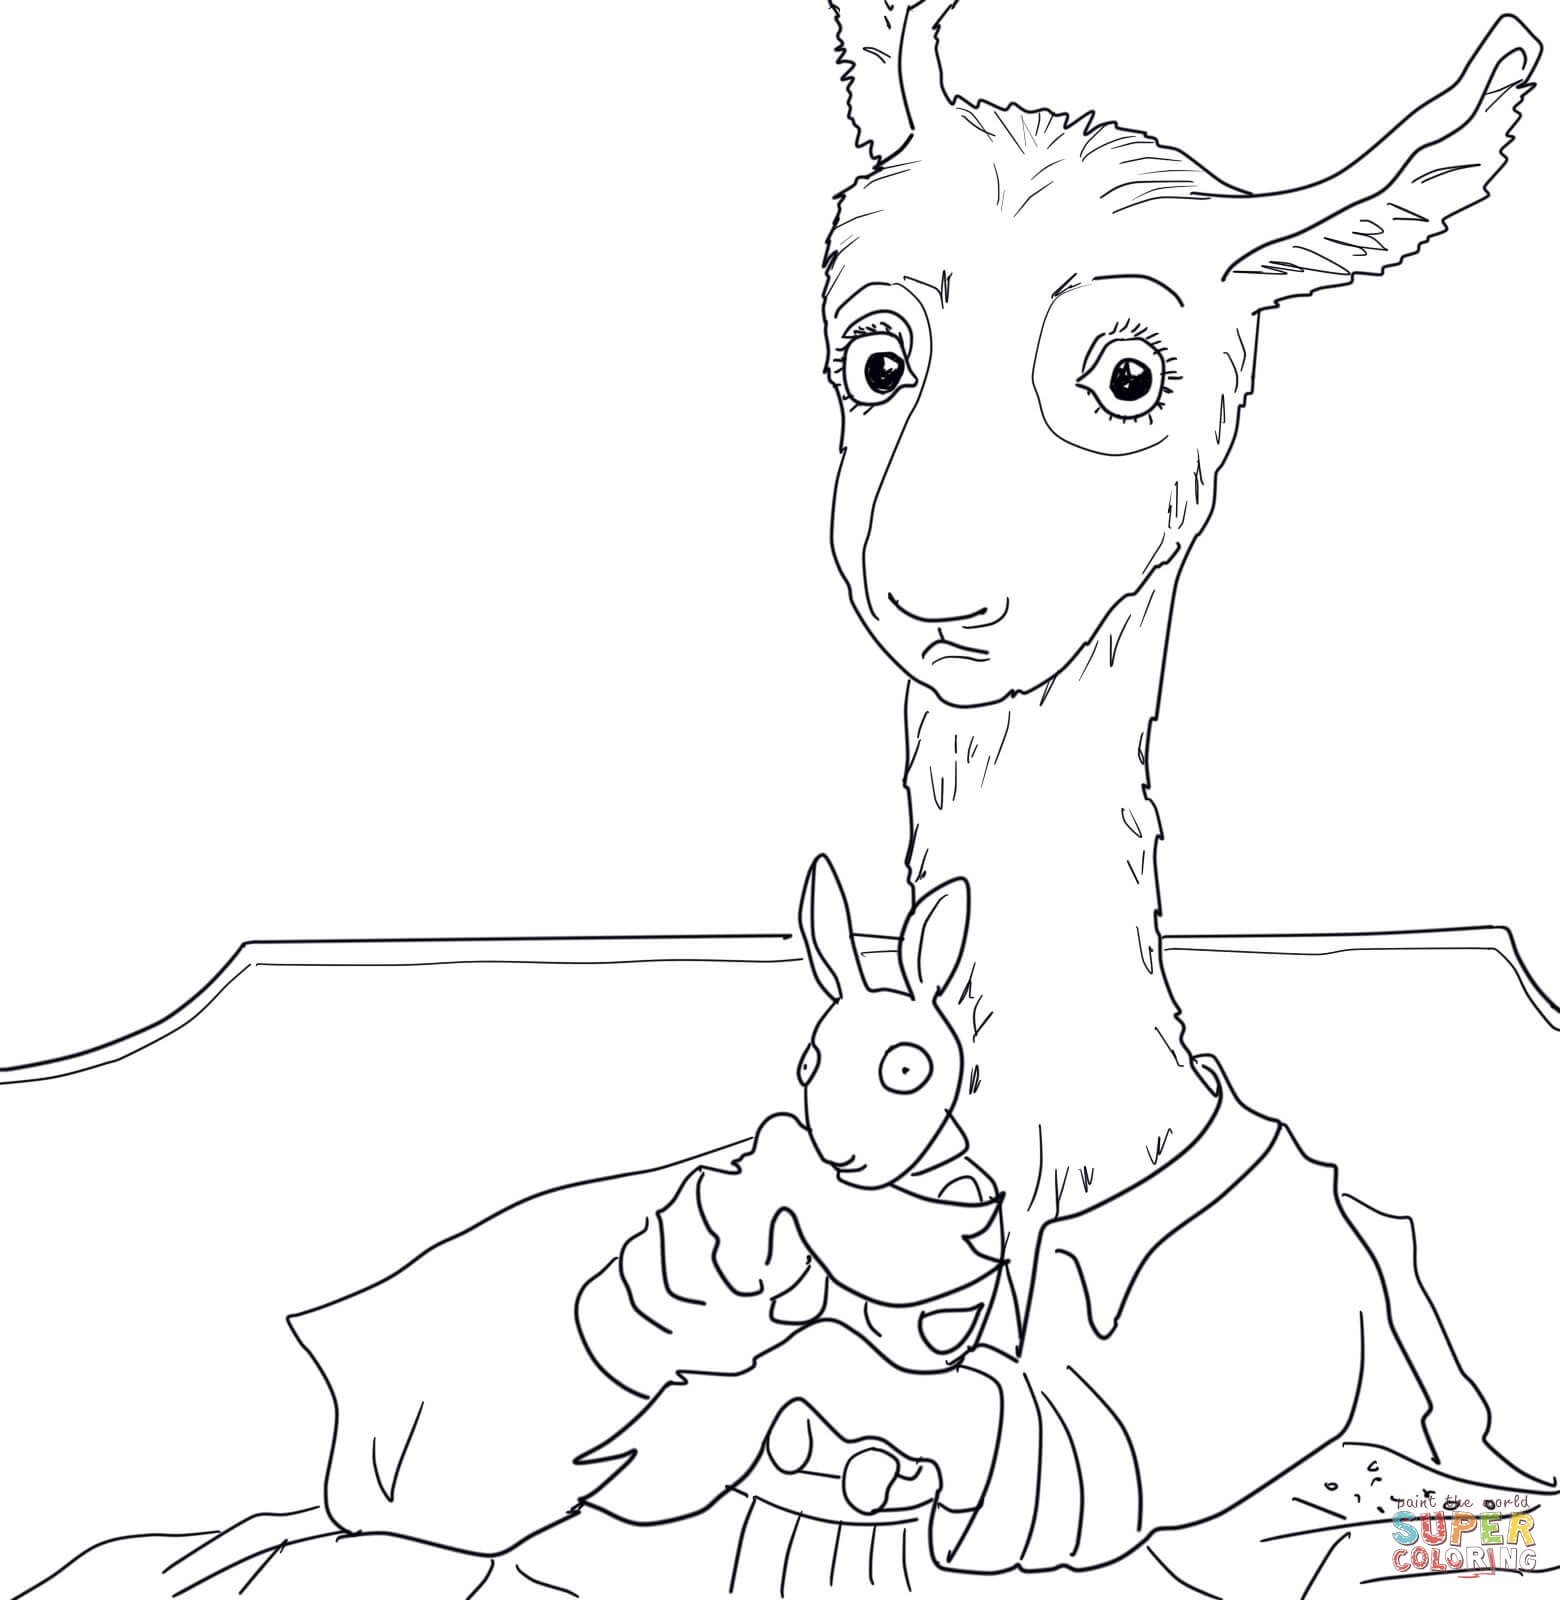 Coloring Pages Kids In Pajamas - Coloring Home - Free Printable Pajama Coloring Pages